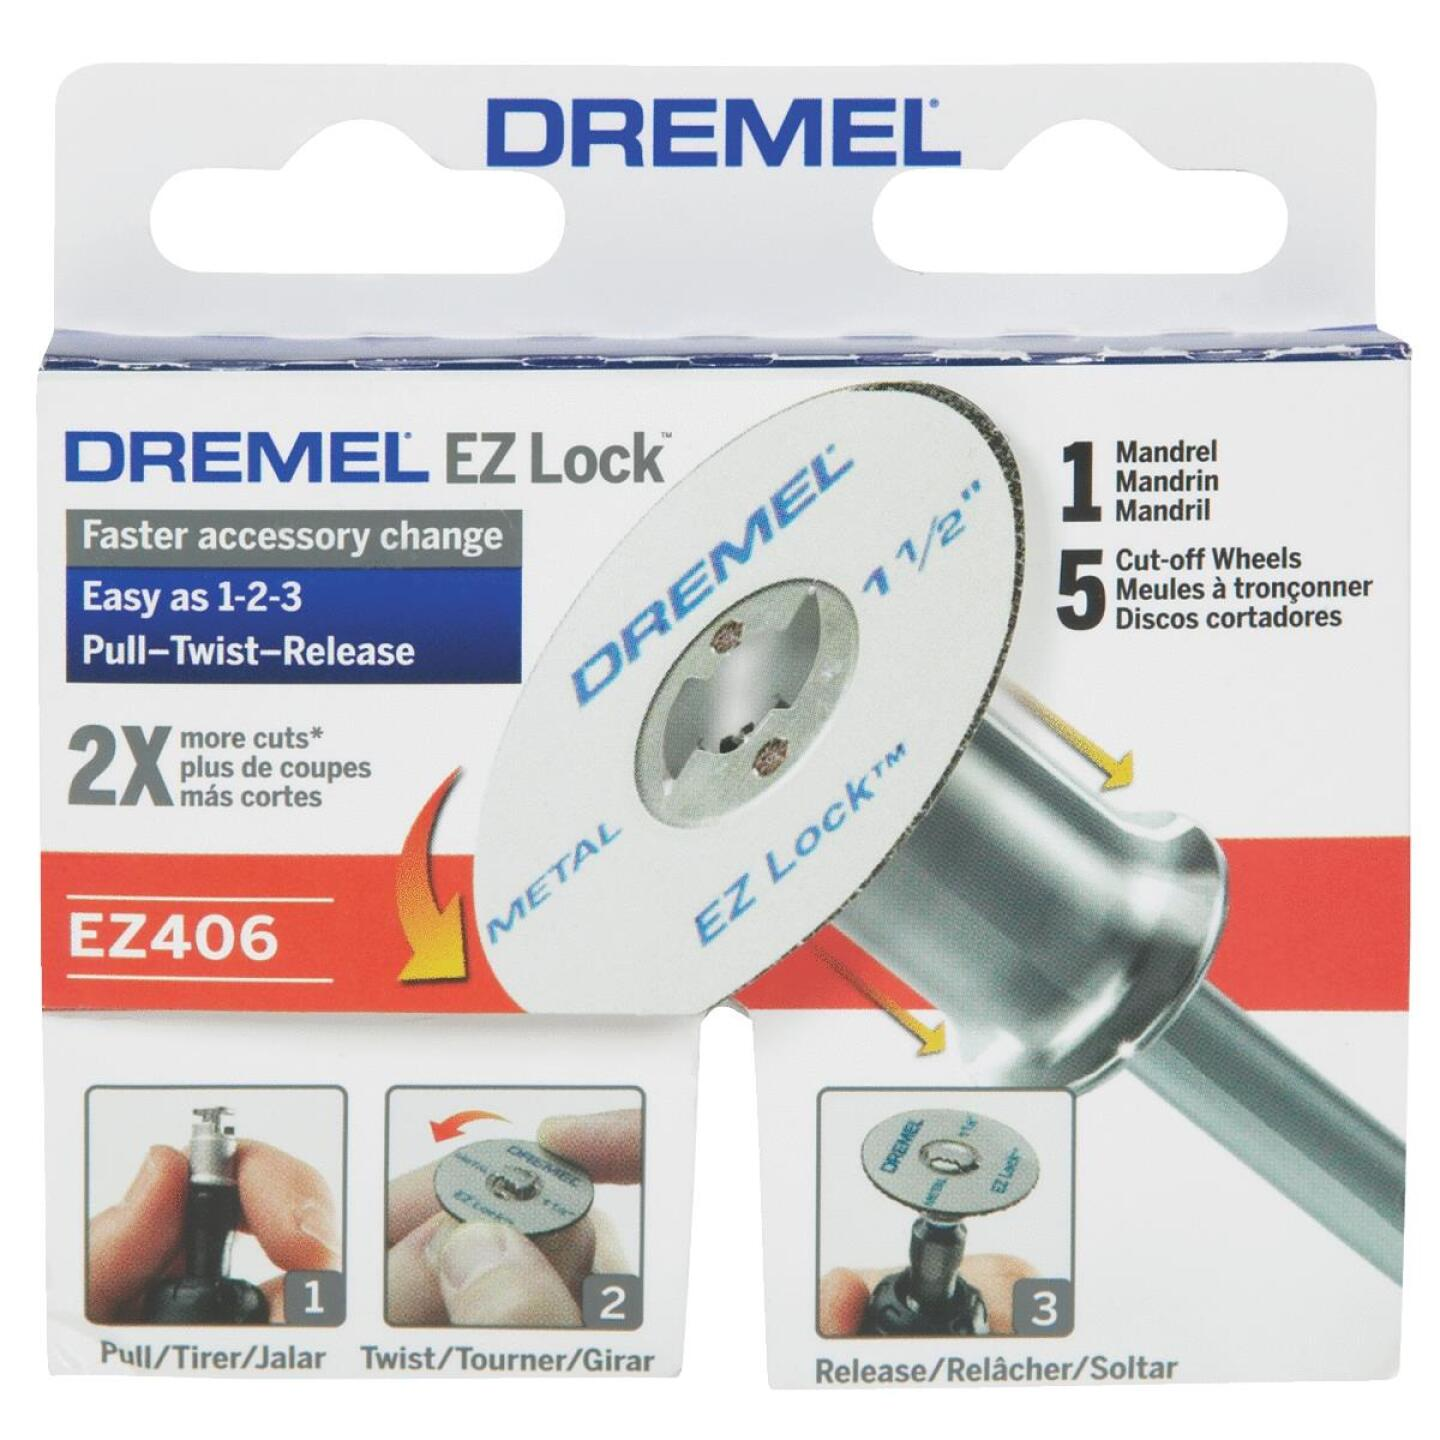 Dremel EZ Lock Mandrel and Cut-Off Wheel Starter Rotary Tool Accessory Kit (5-Piece) Image 2